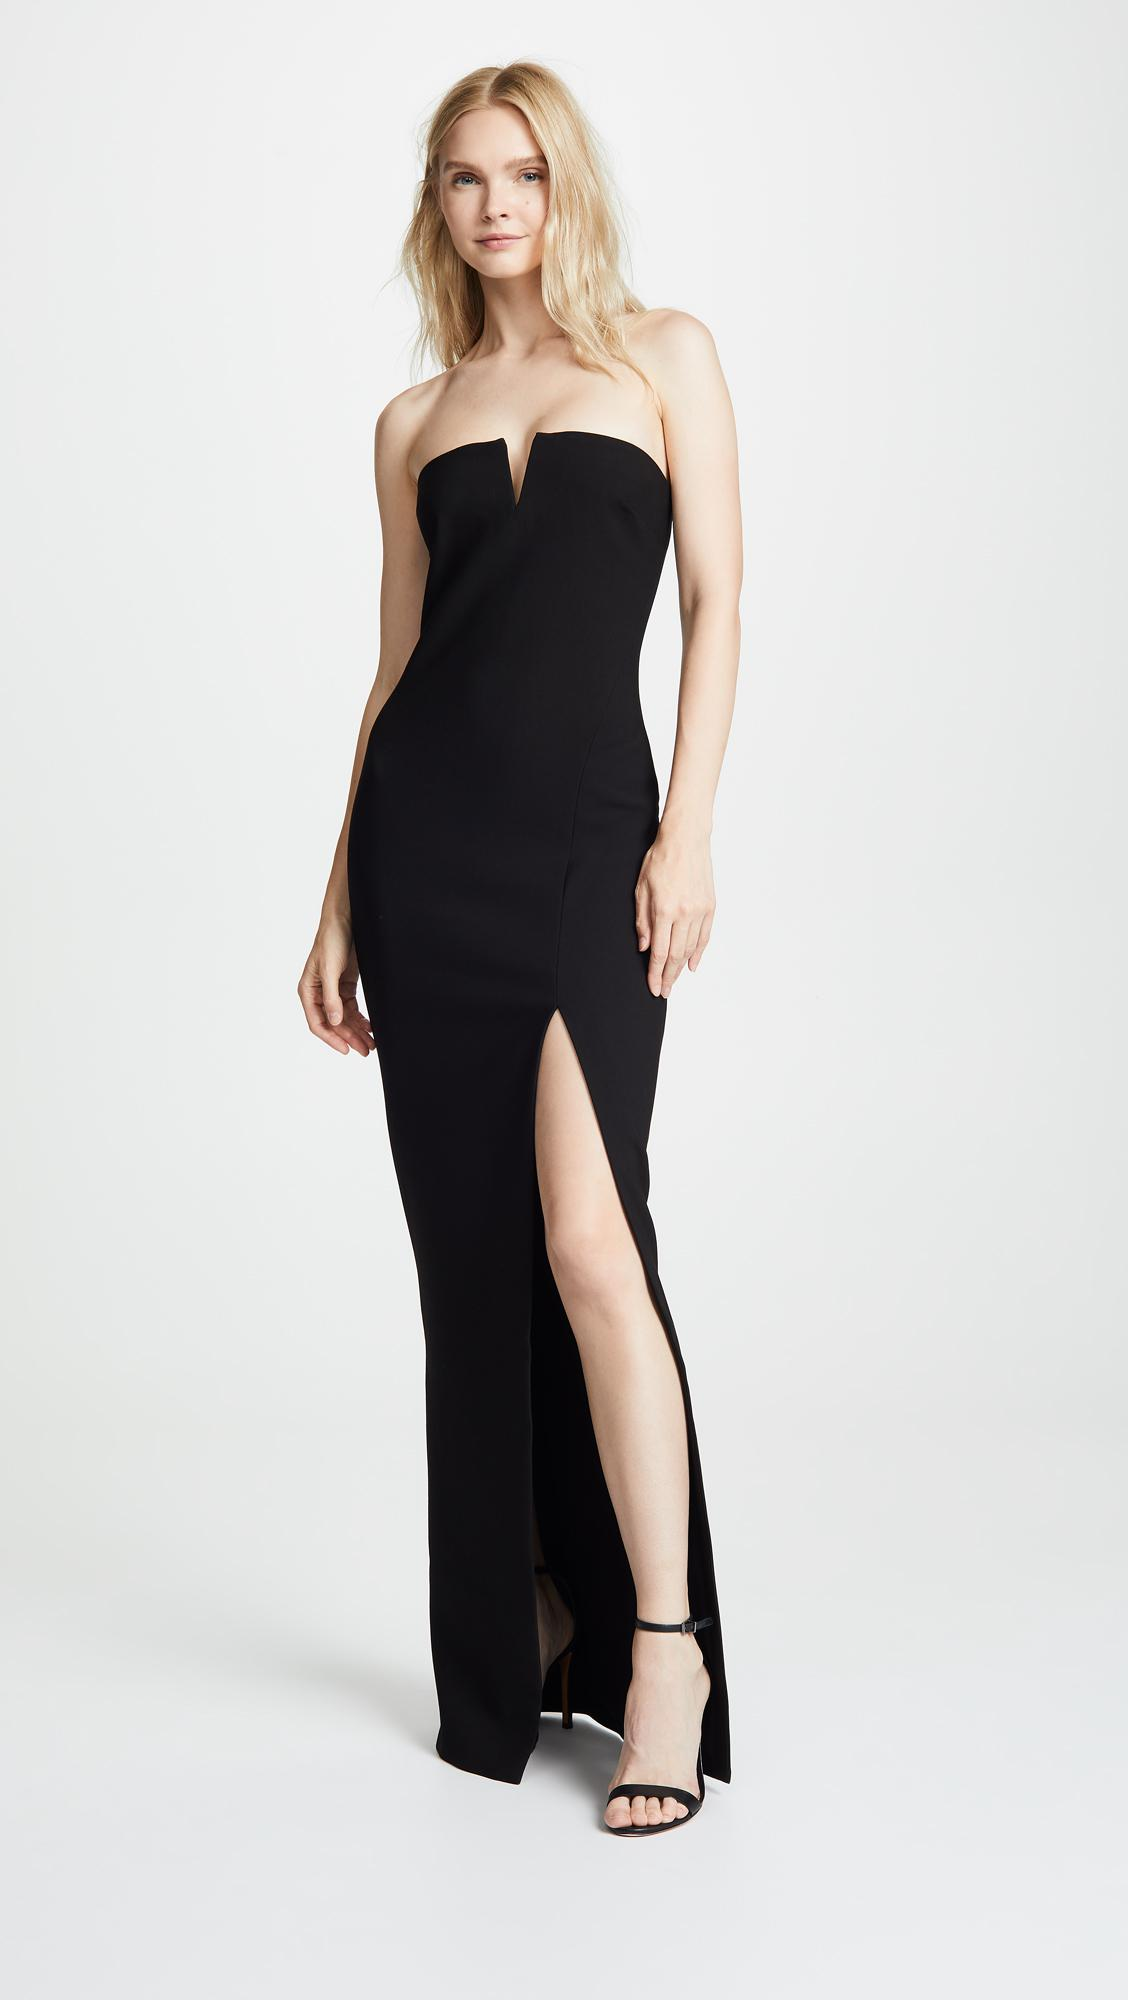 Lyst - Likely Windsor Gown in Black